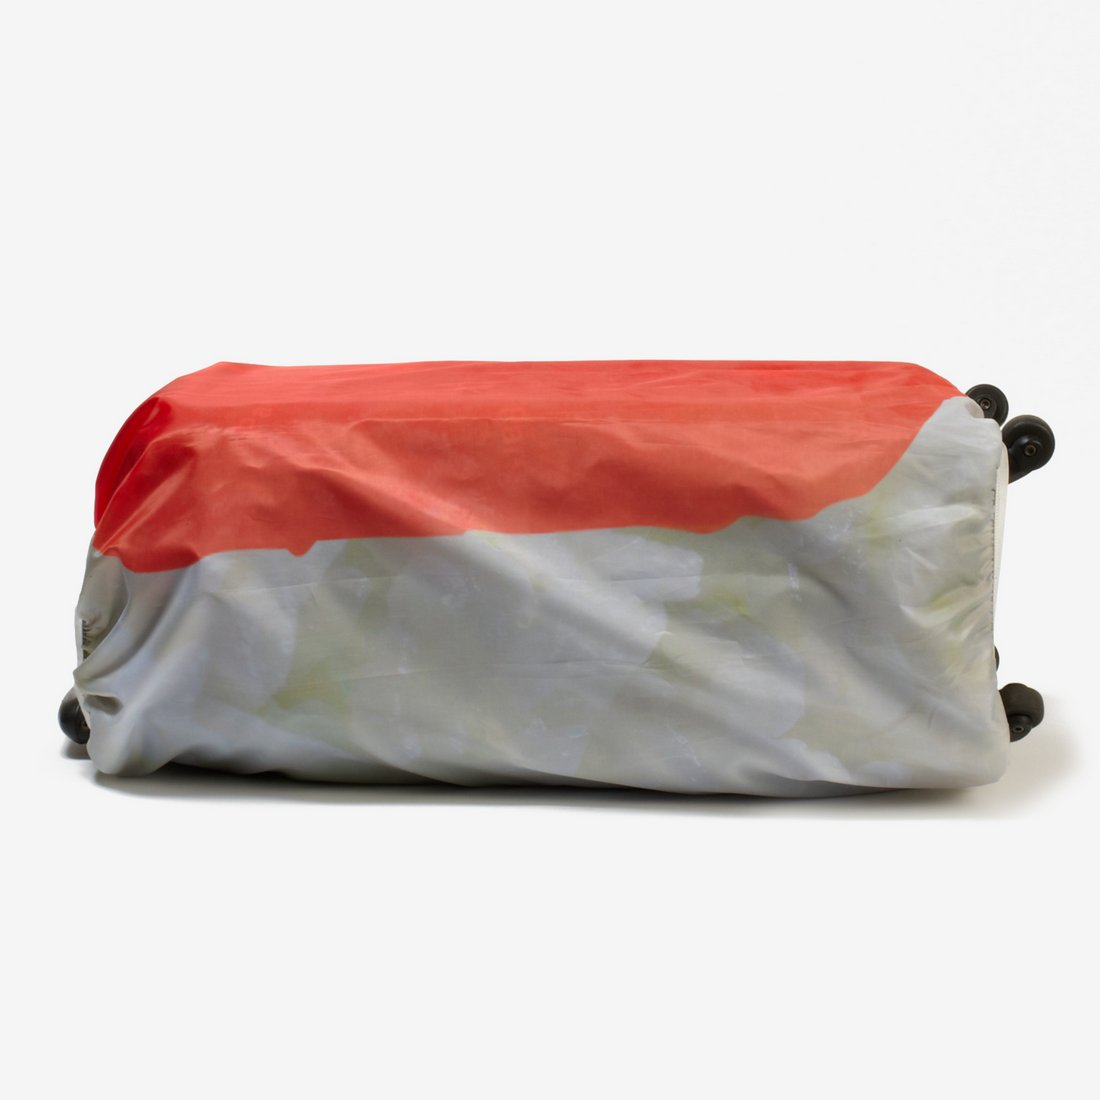 omiseparco-sushi-suitcase-cover (5)